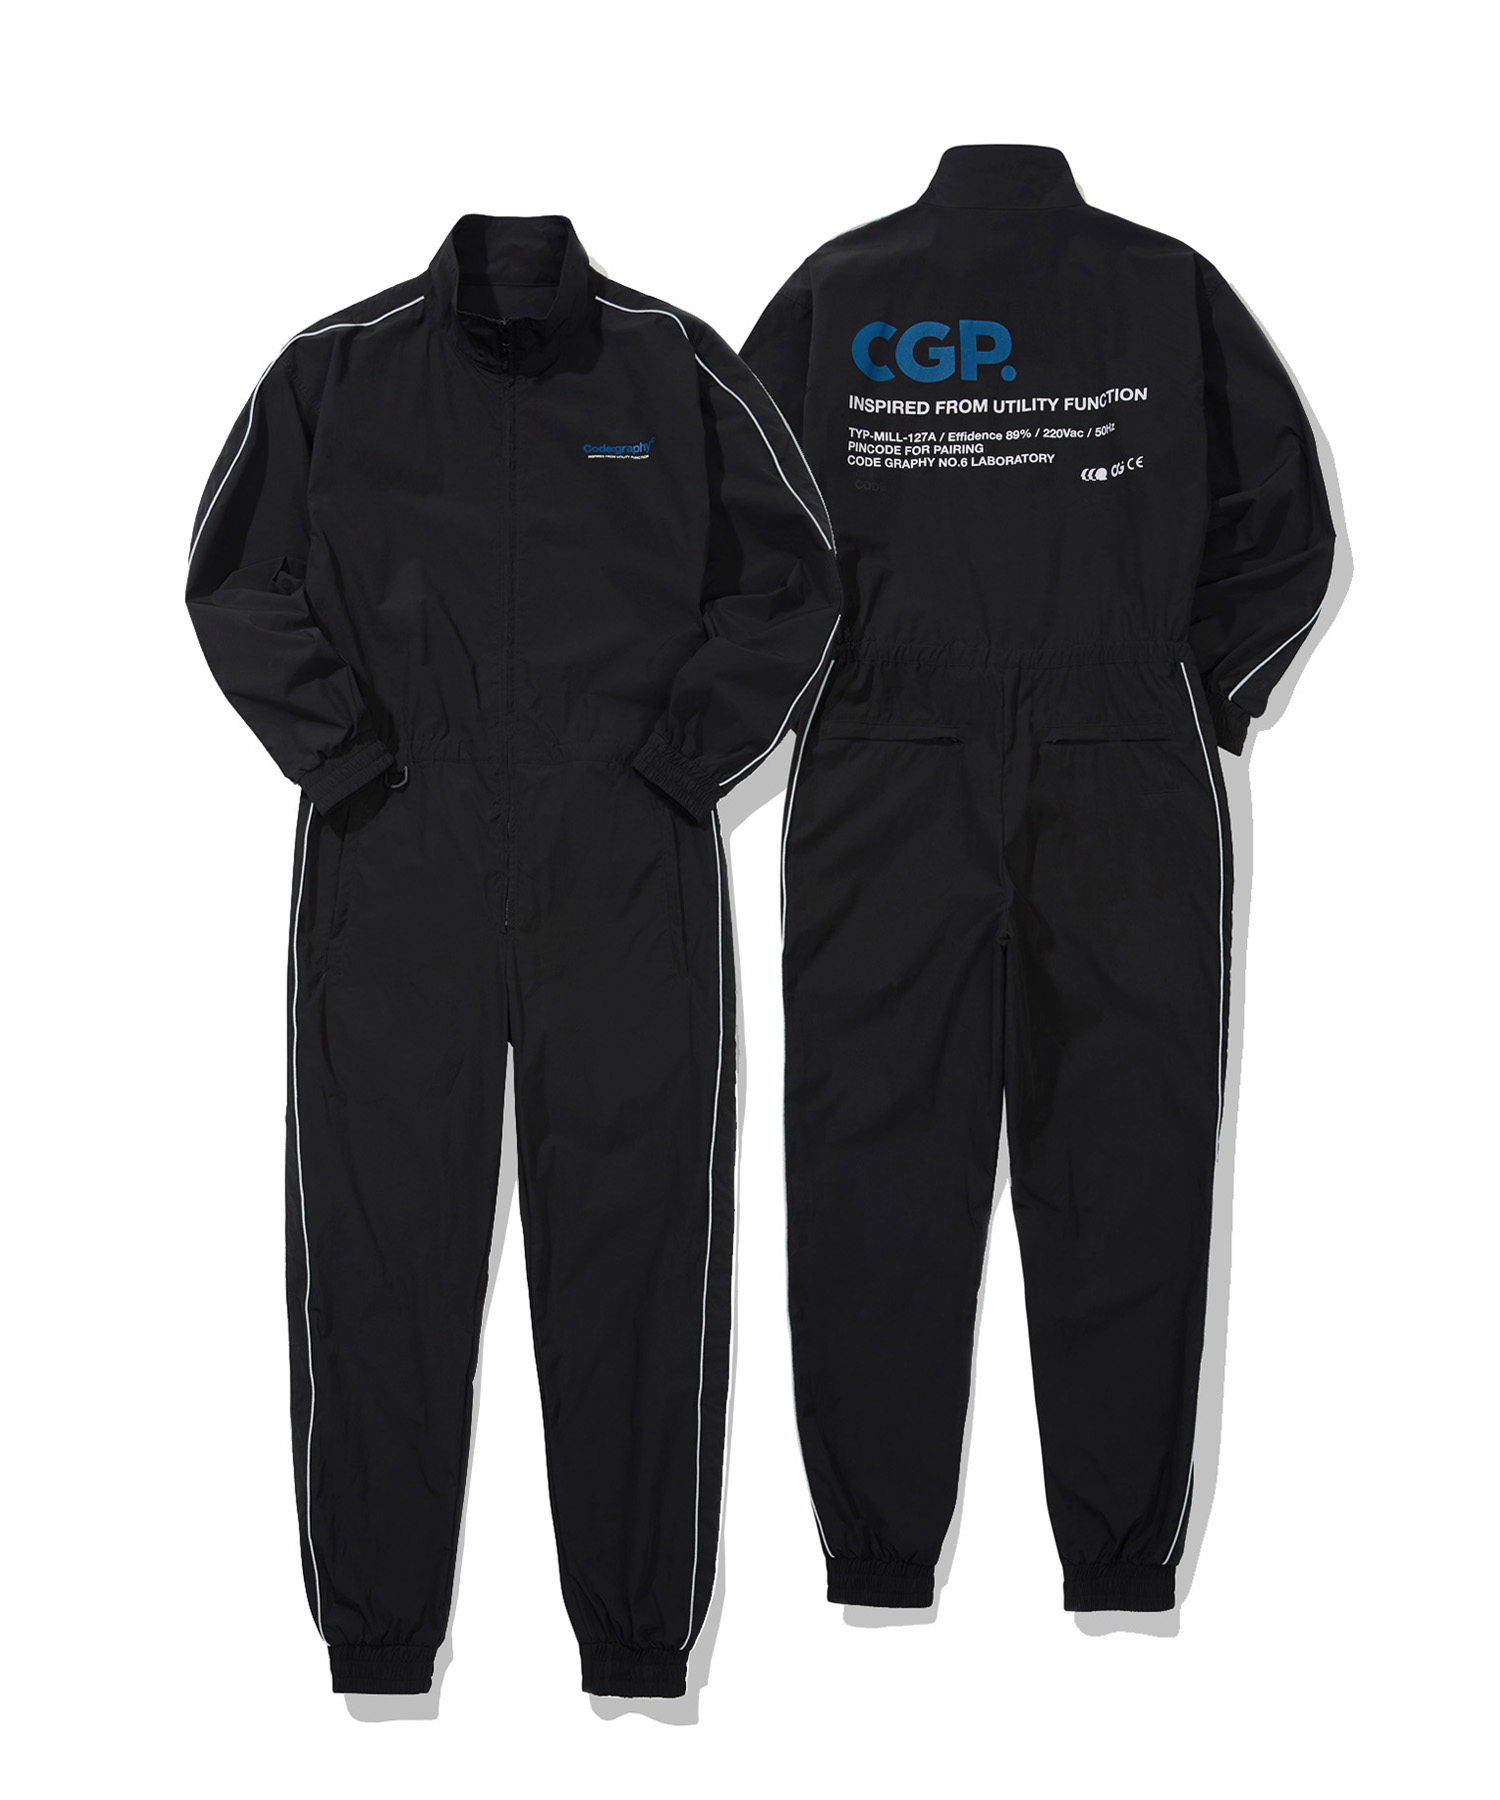 PIPING JUMP SUIT - BK